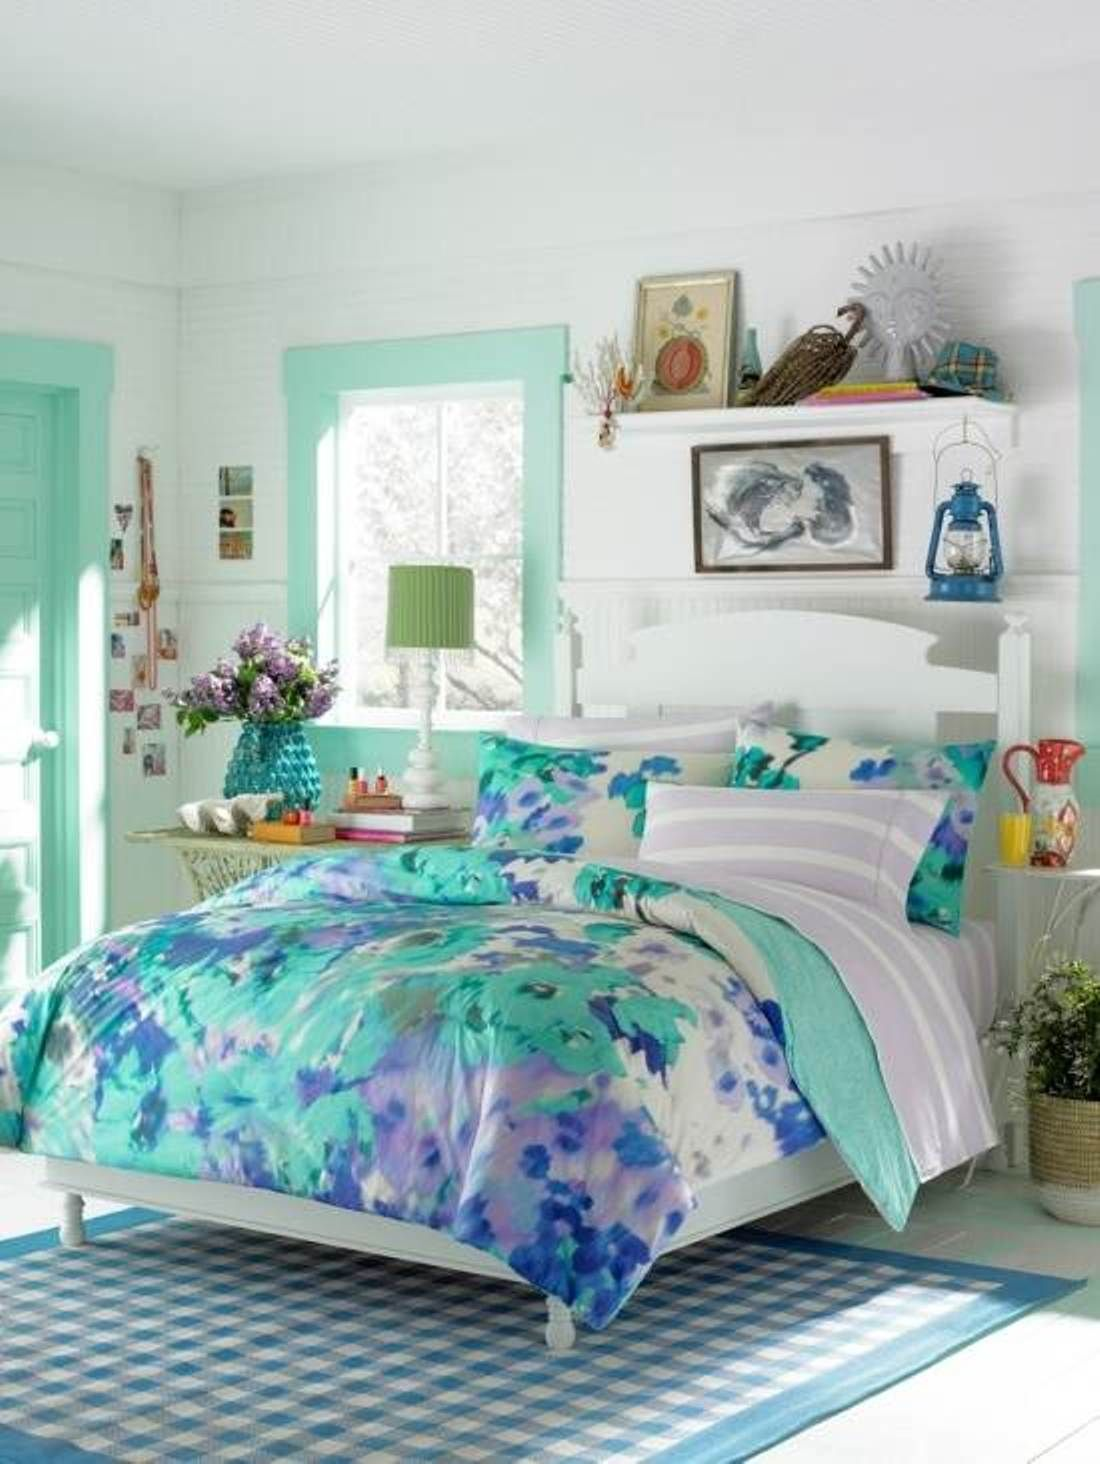 Blue and green bedrooms for girls - Girls Bedroom Blue